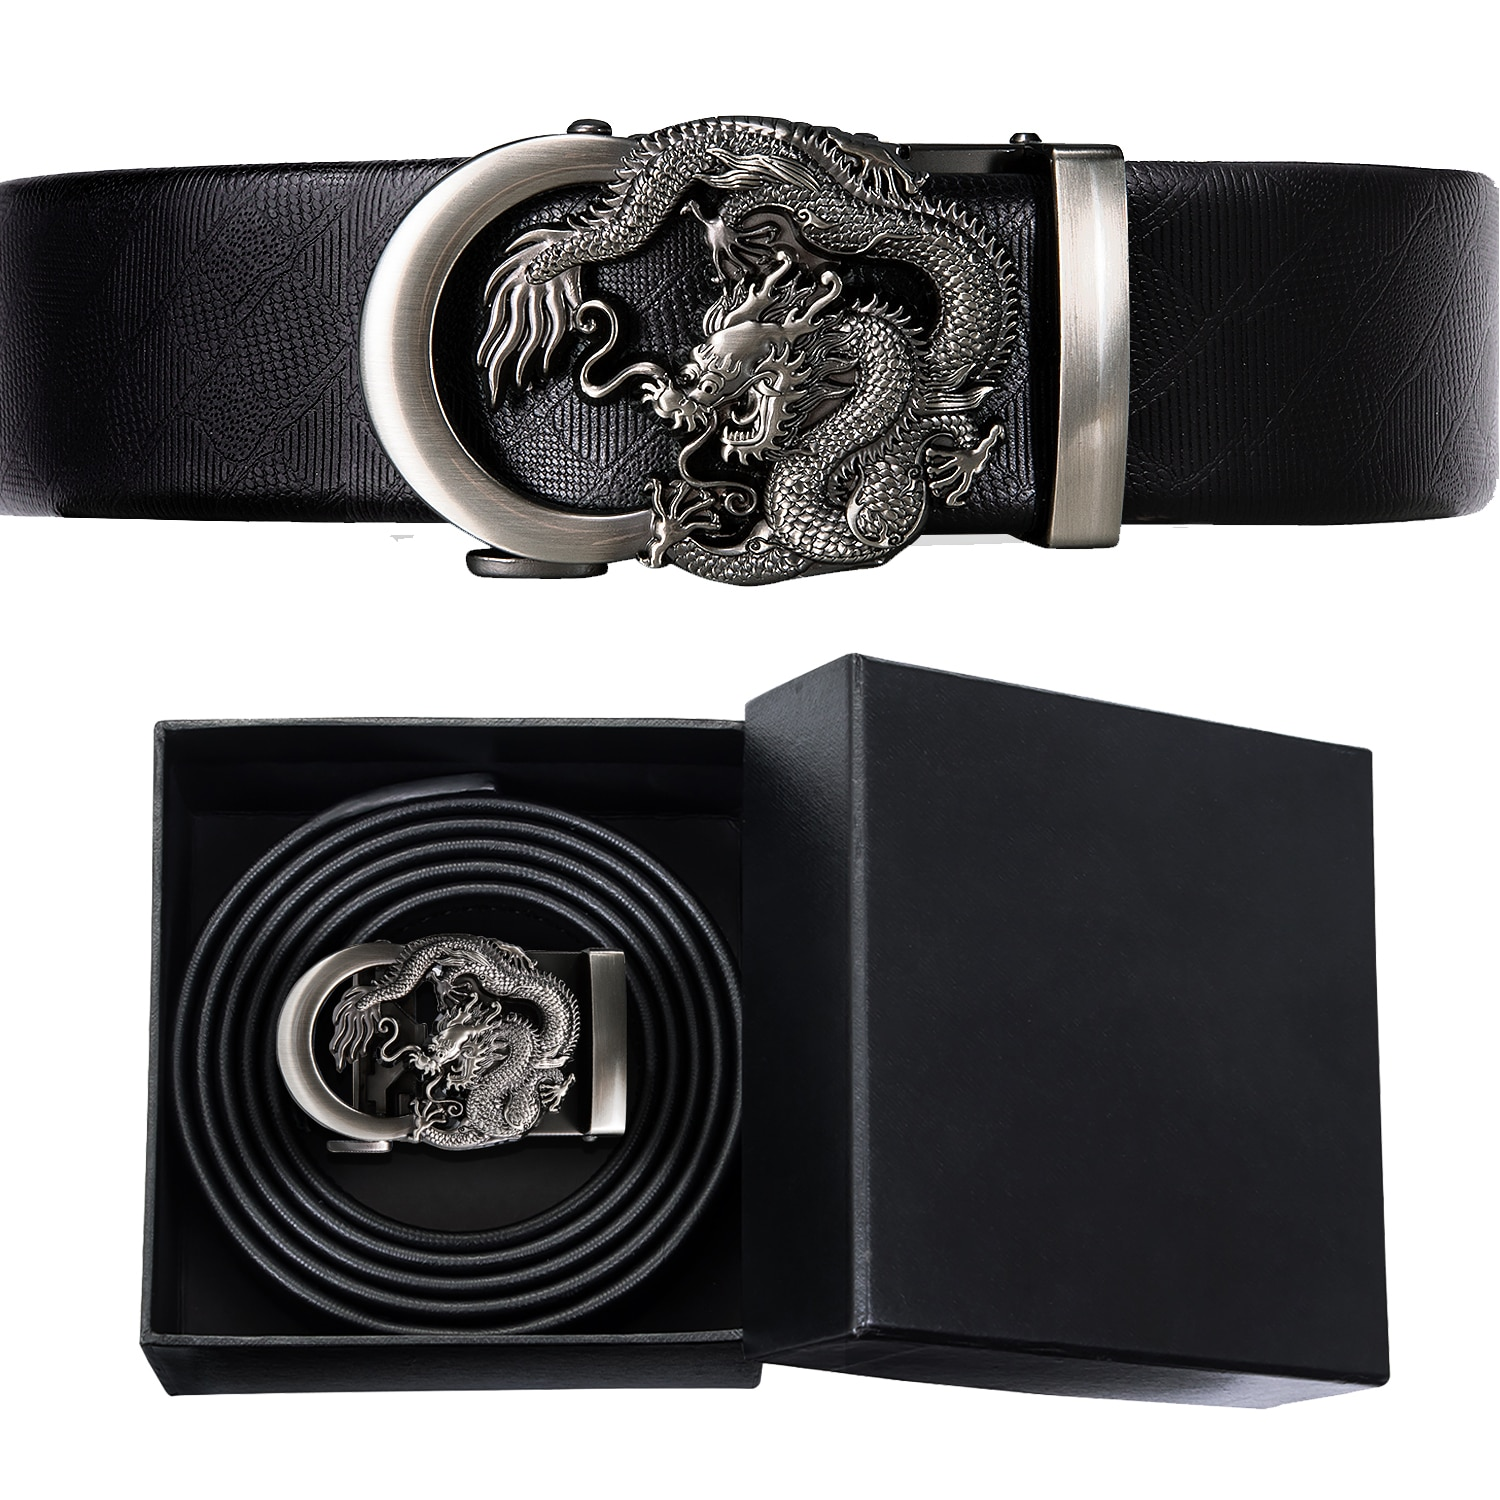 Hi-Tie Famous Brand Leather Belt Men 2020 New Male Metal Dragon Buckle Belts and Box for Men Gift Luxury Leather Jeans Straps